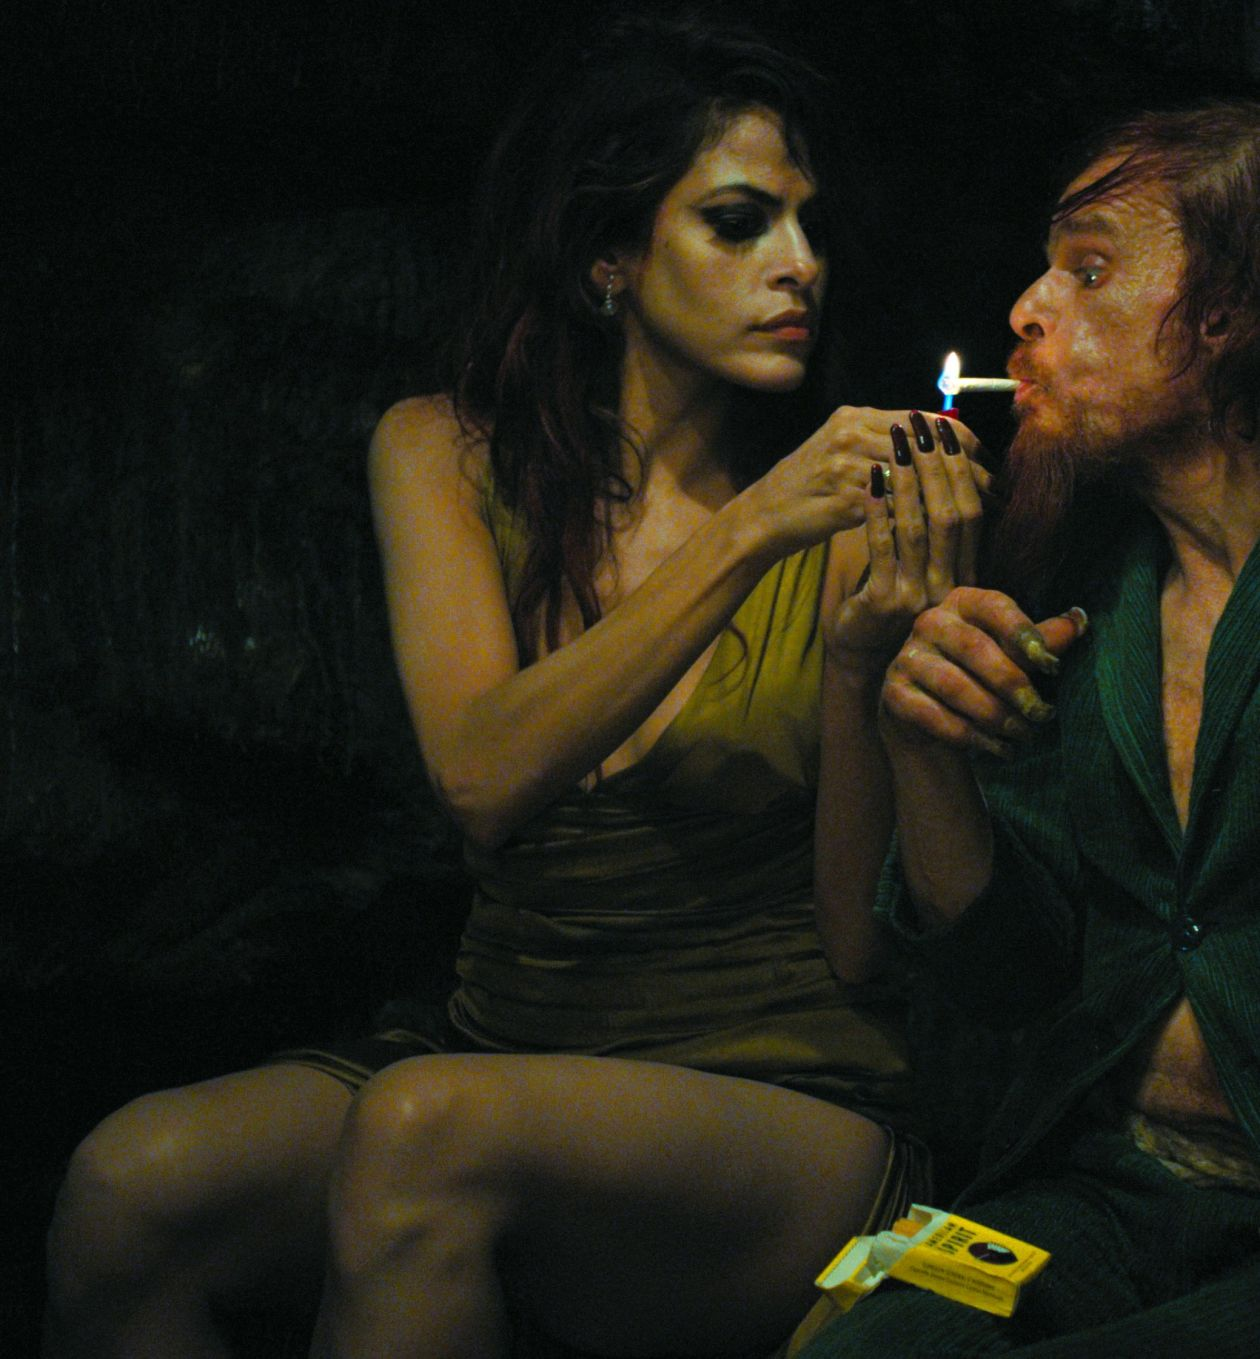 Eva Mendes actress / Denis Lavant | Holy Motors / Leos Carax 2012